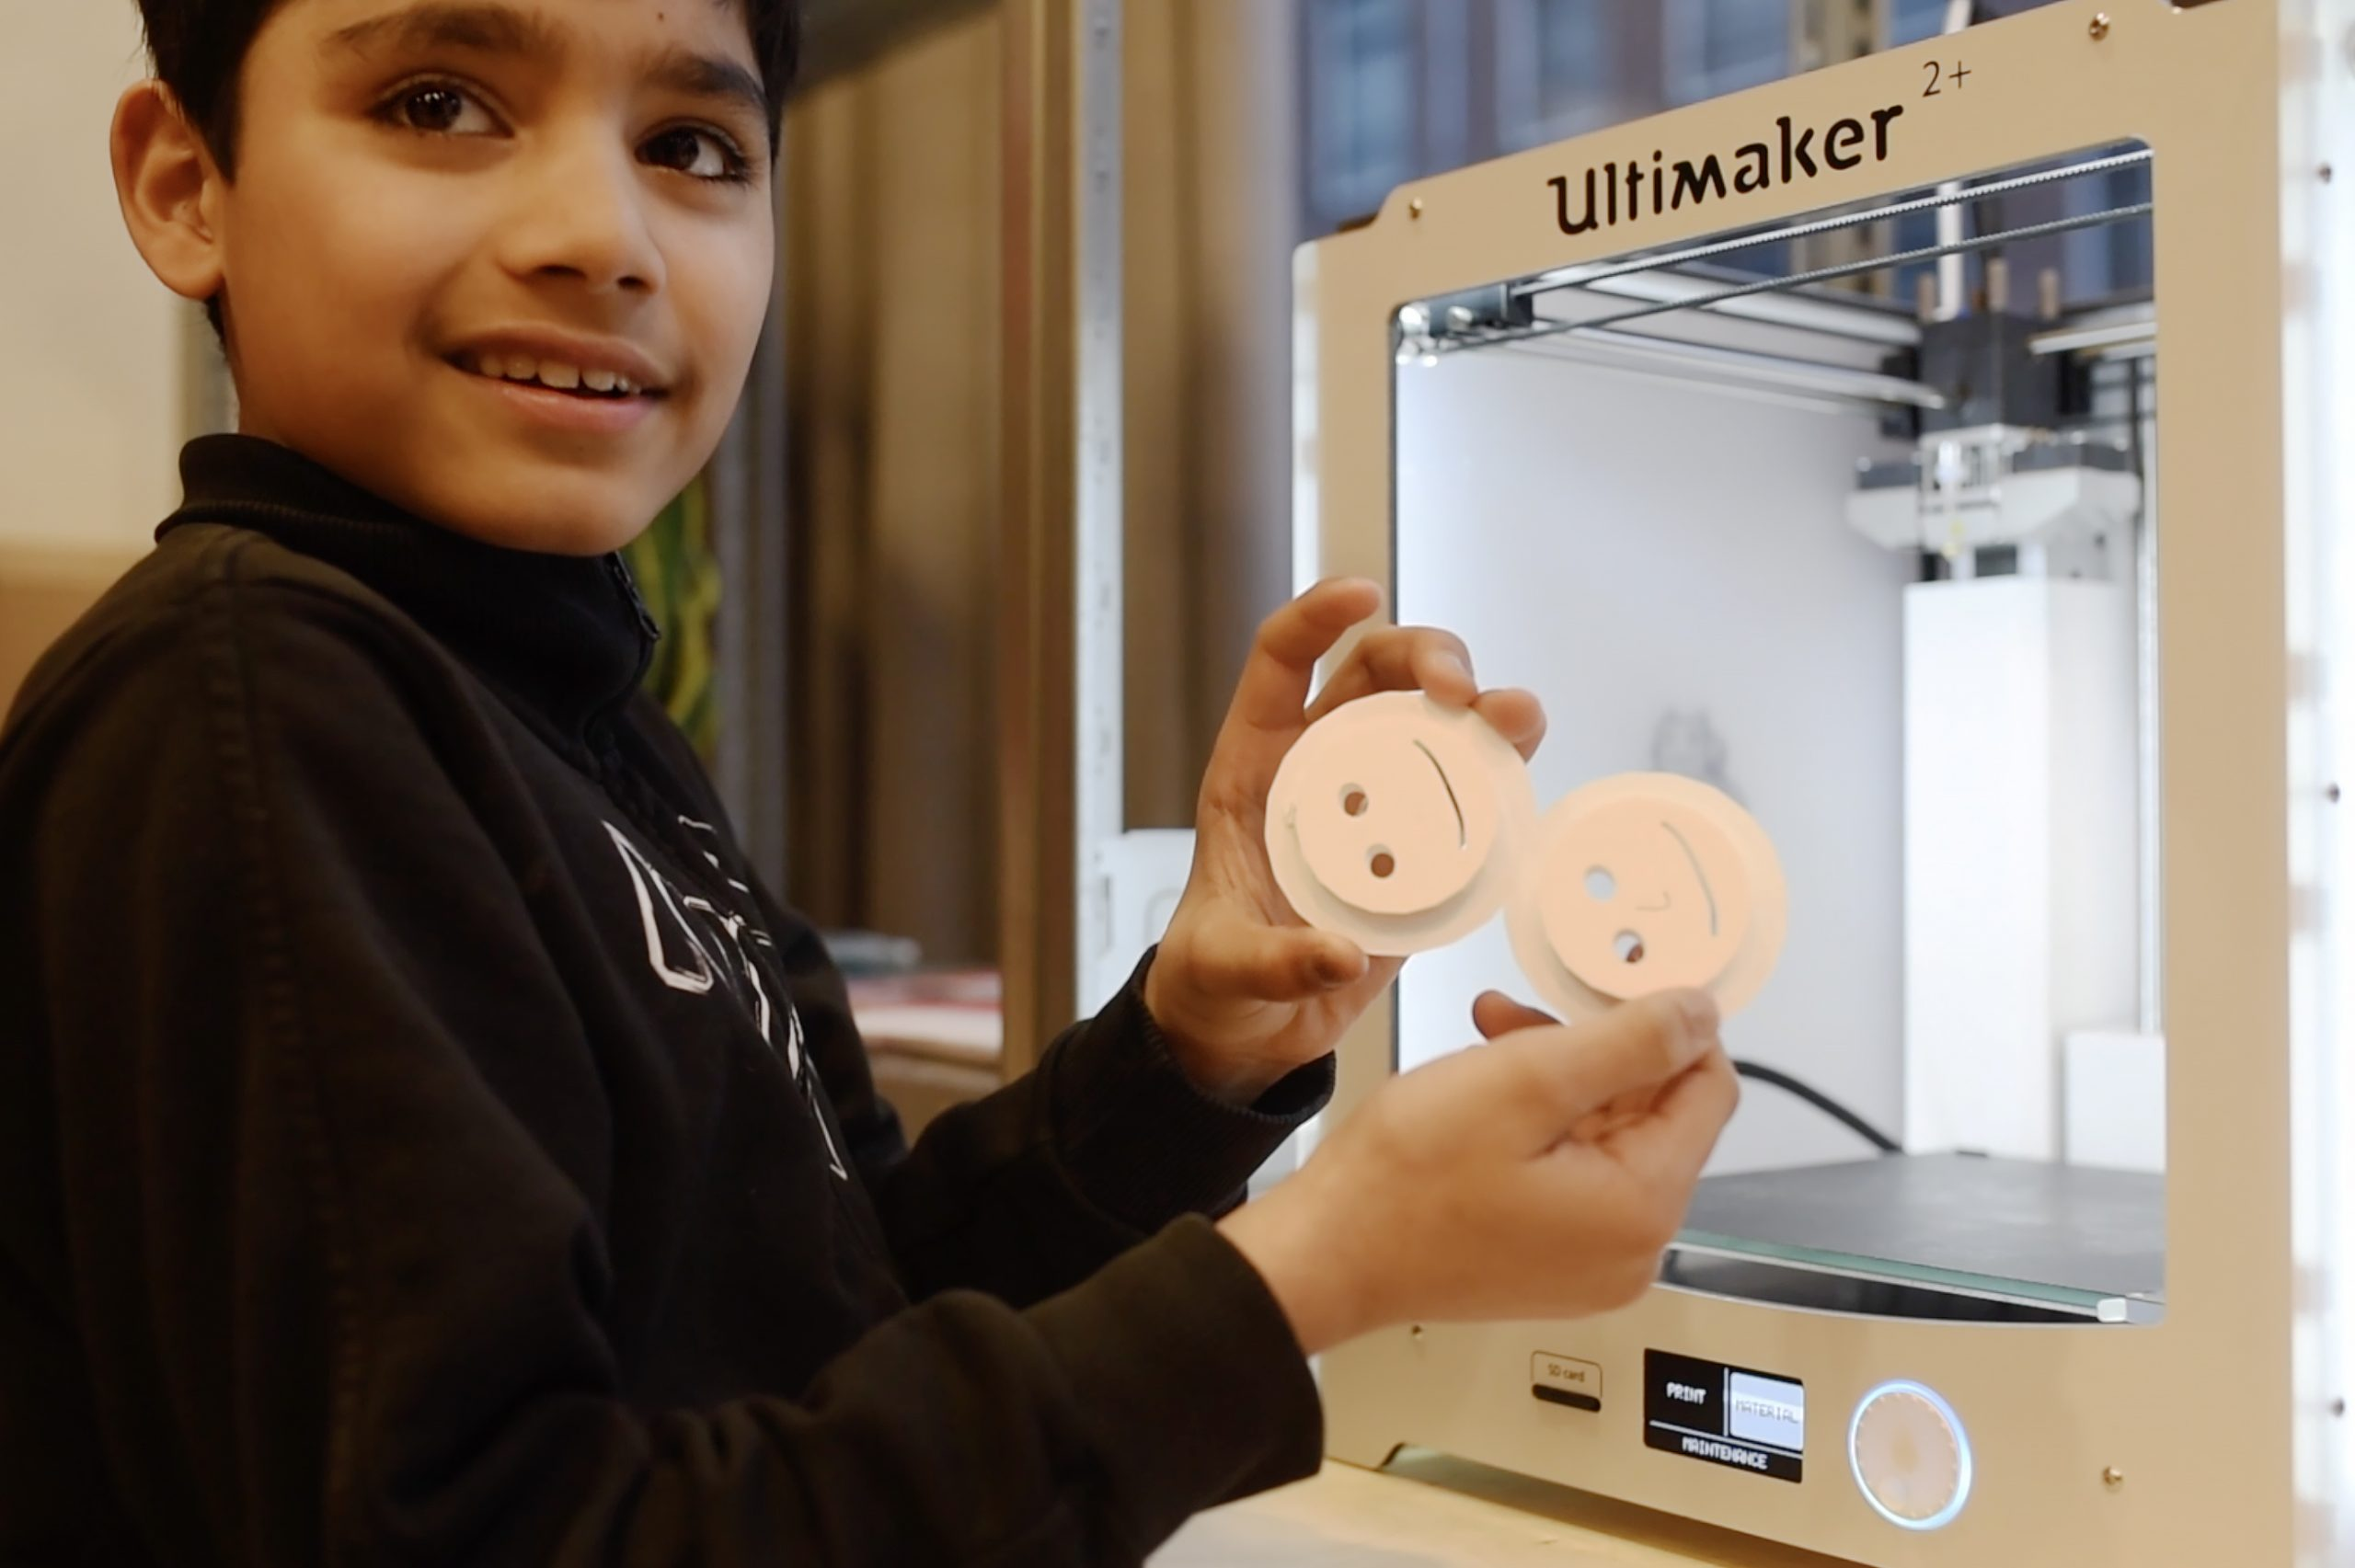 Young learners in the Netherlands trying out new digital fabrication skills.